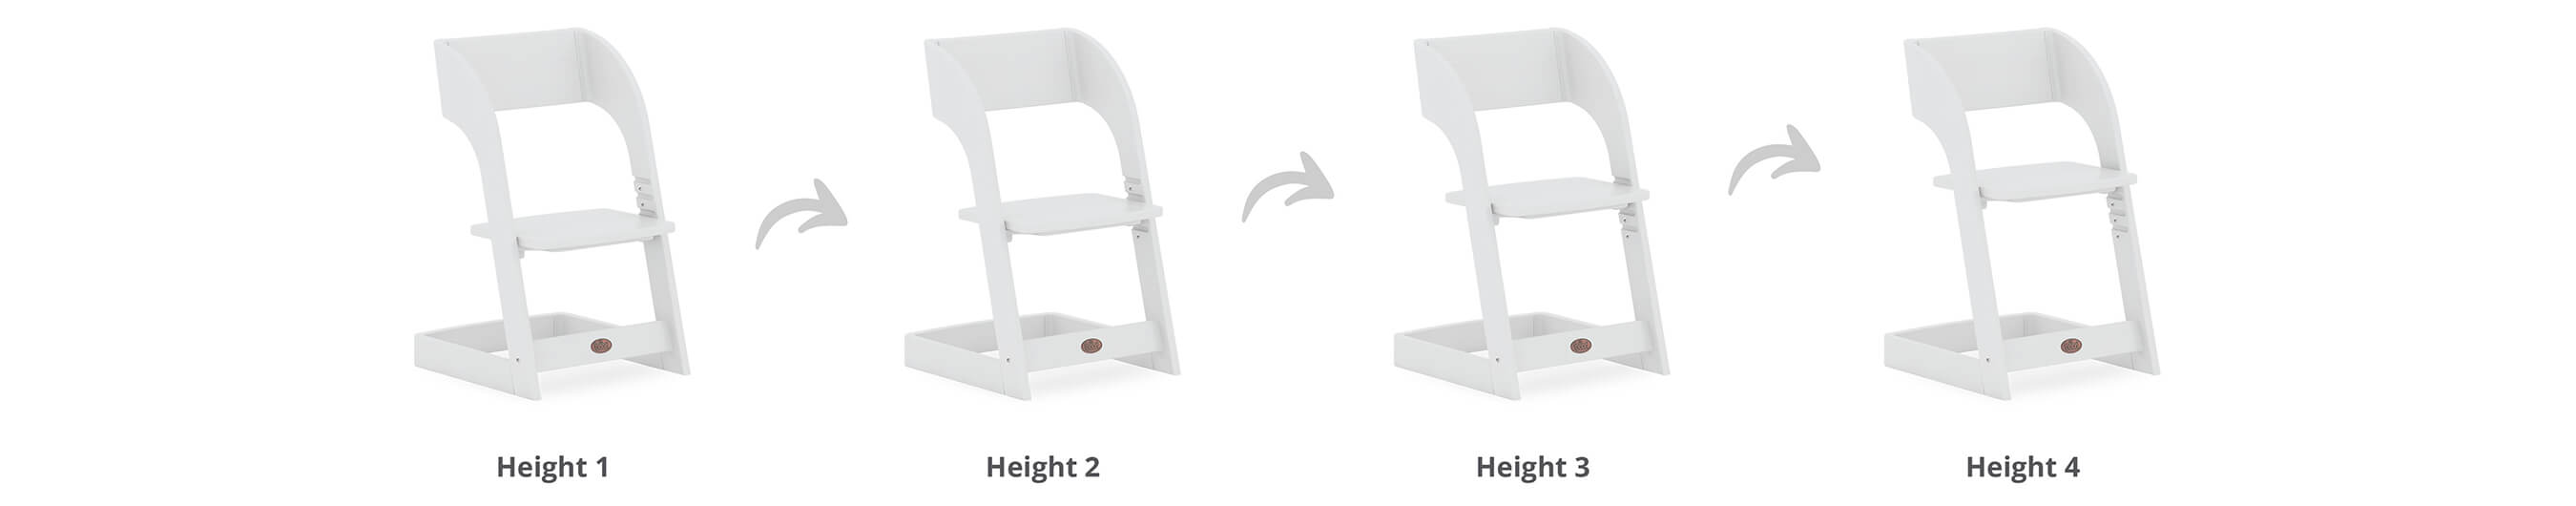 Feature_Highlight_CMS_Blocks_Height_Adjustable_Desks_and_Chairs_January_2021-01